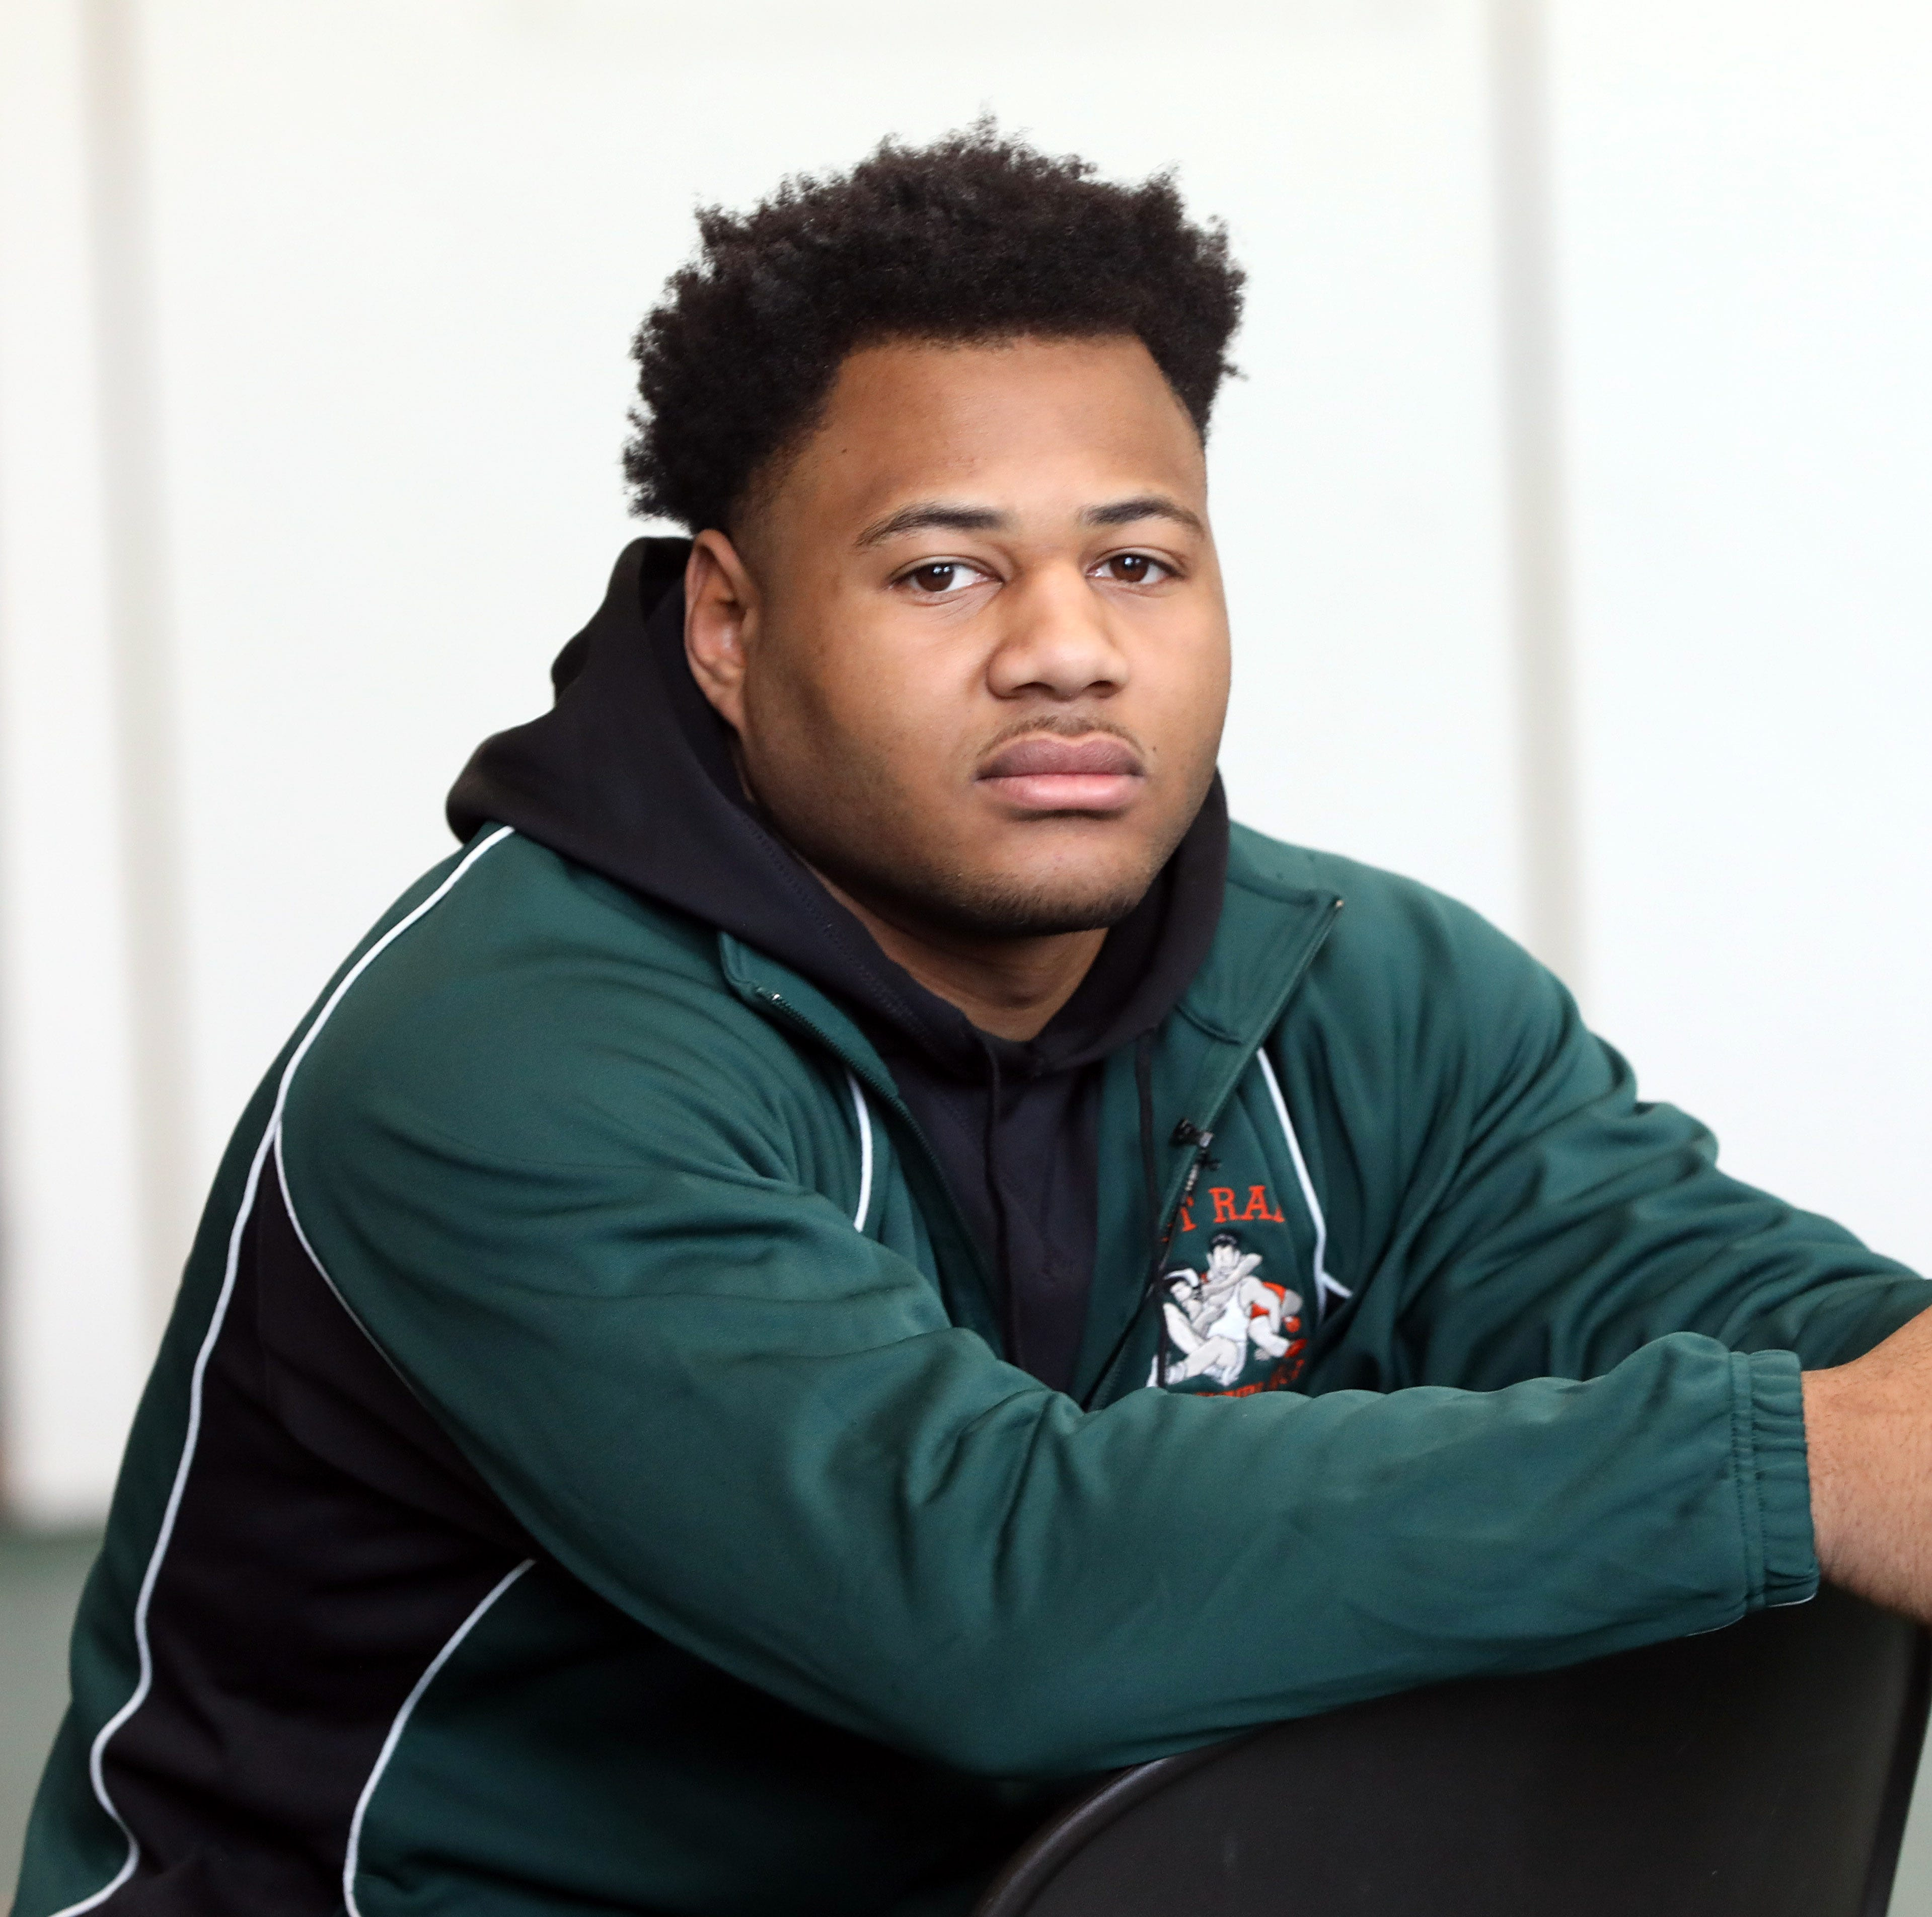 East Ramapo's Jhordyn Innocent is 2018-19 Rockland wrestler of the year